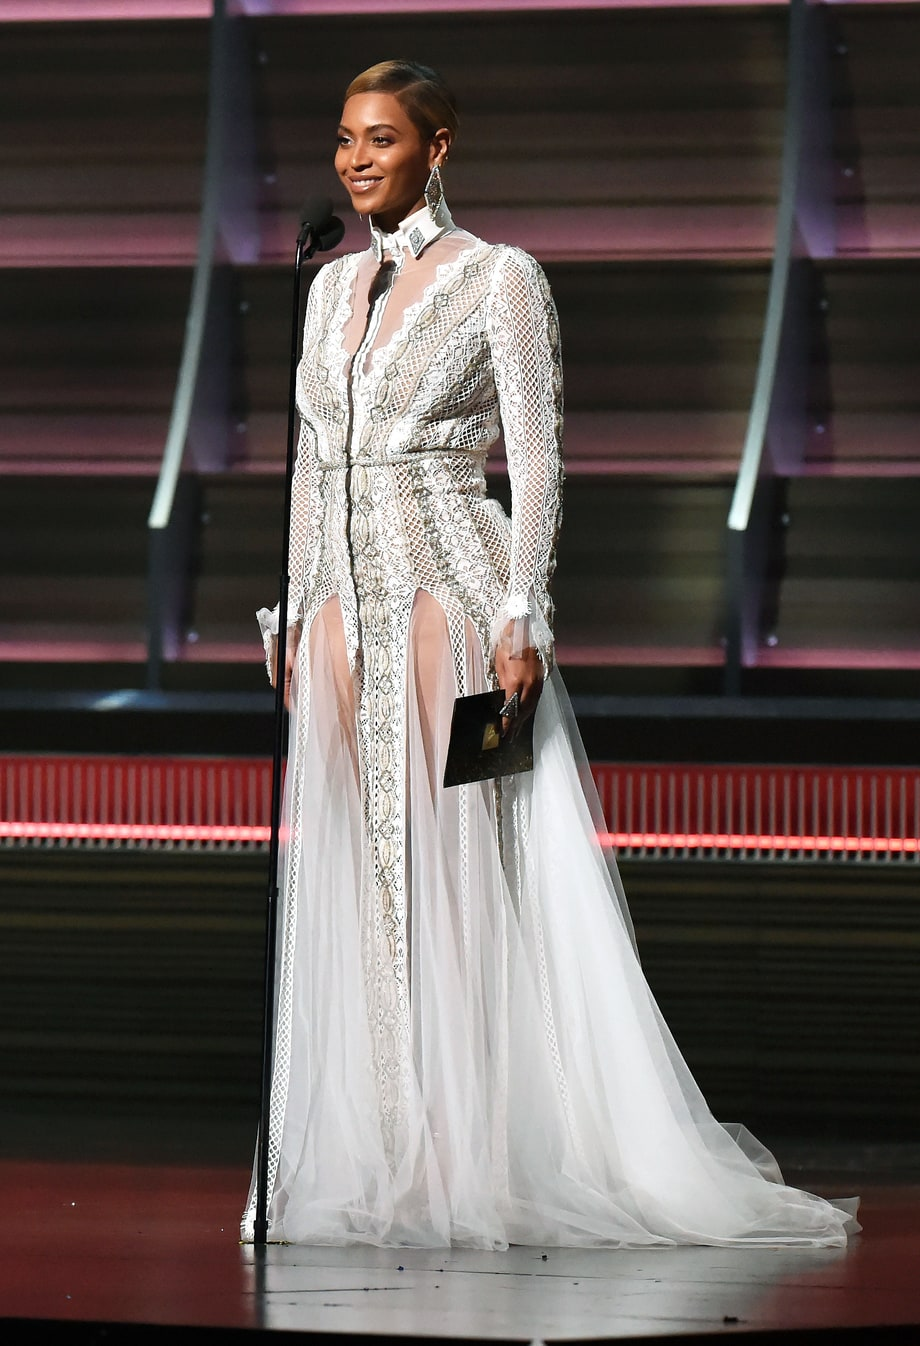 Beyonce Wears Wedding Gown to 2016 Grammy Awards - Photos